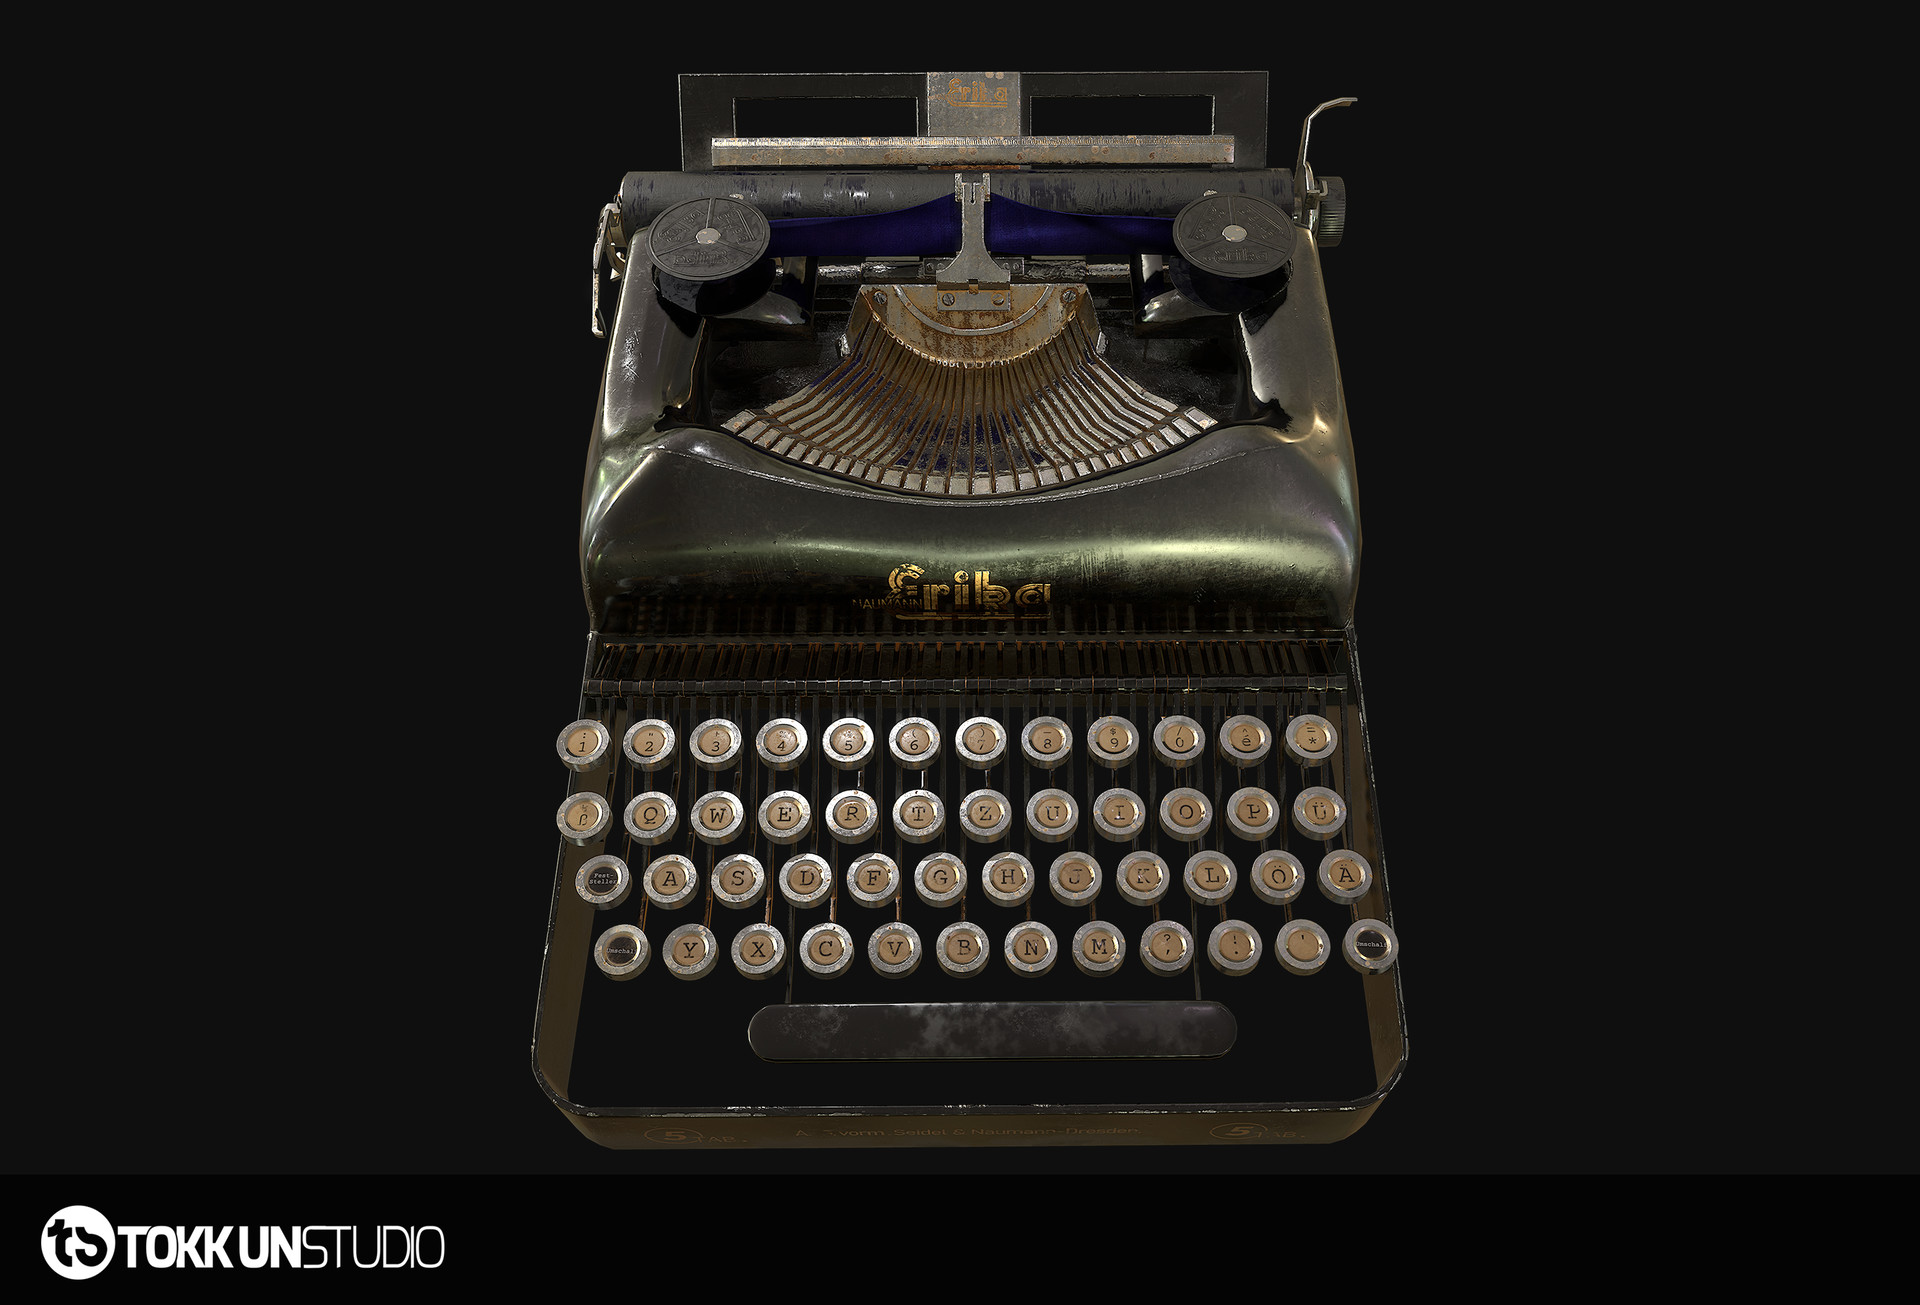 Tokkun studio beauty typewriter 07